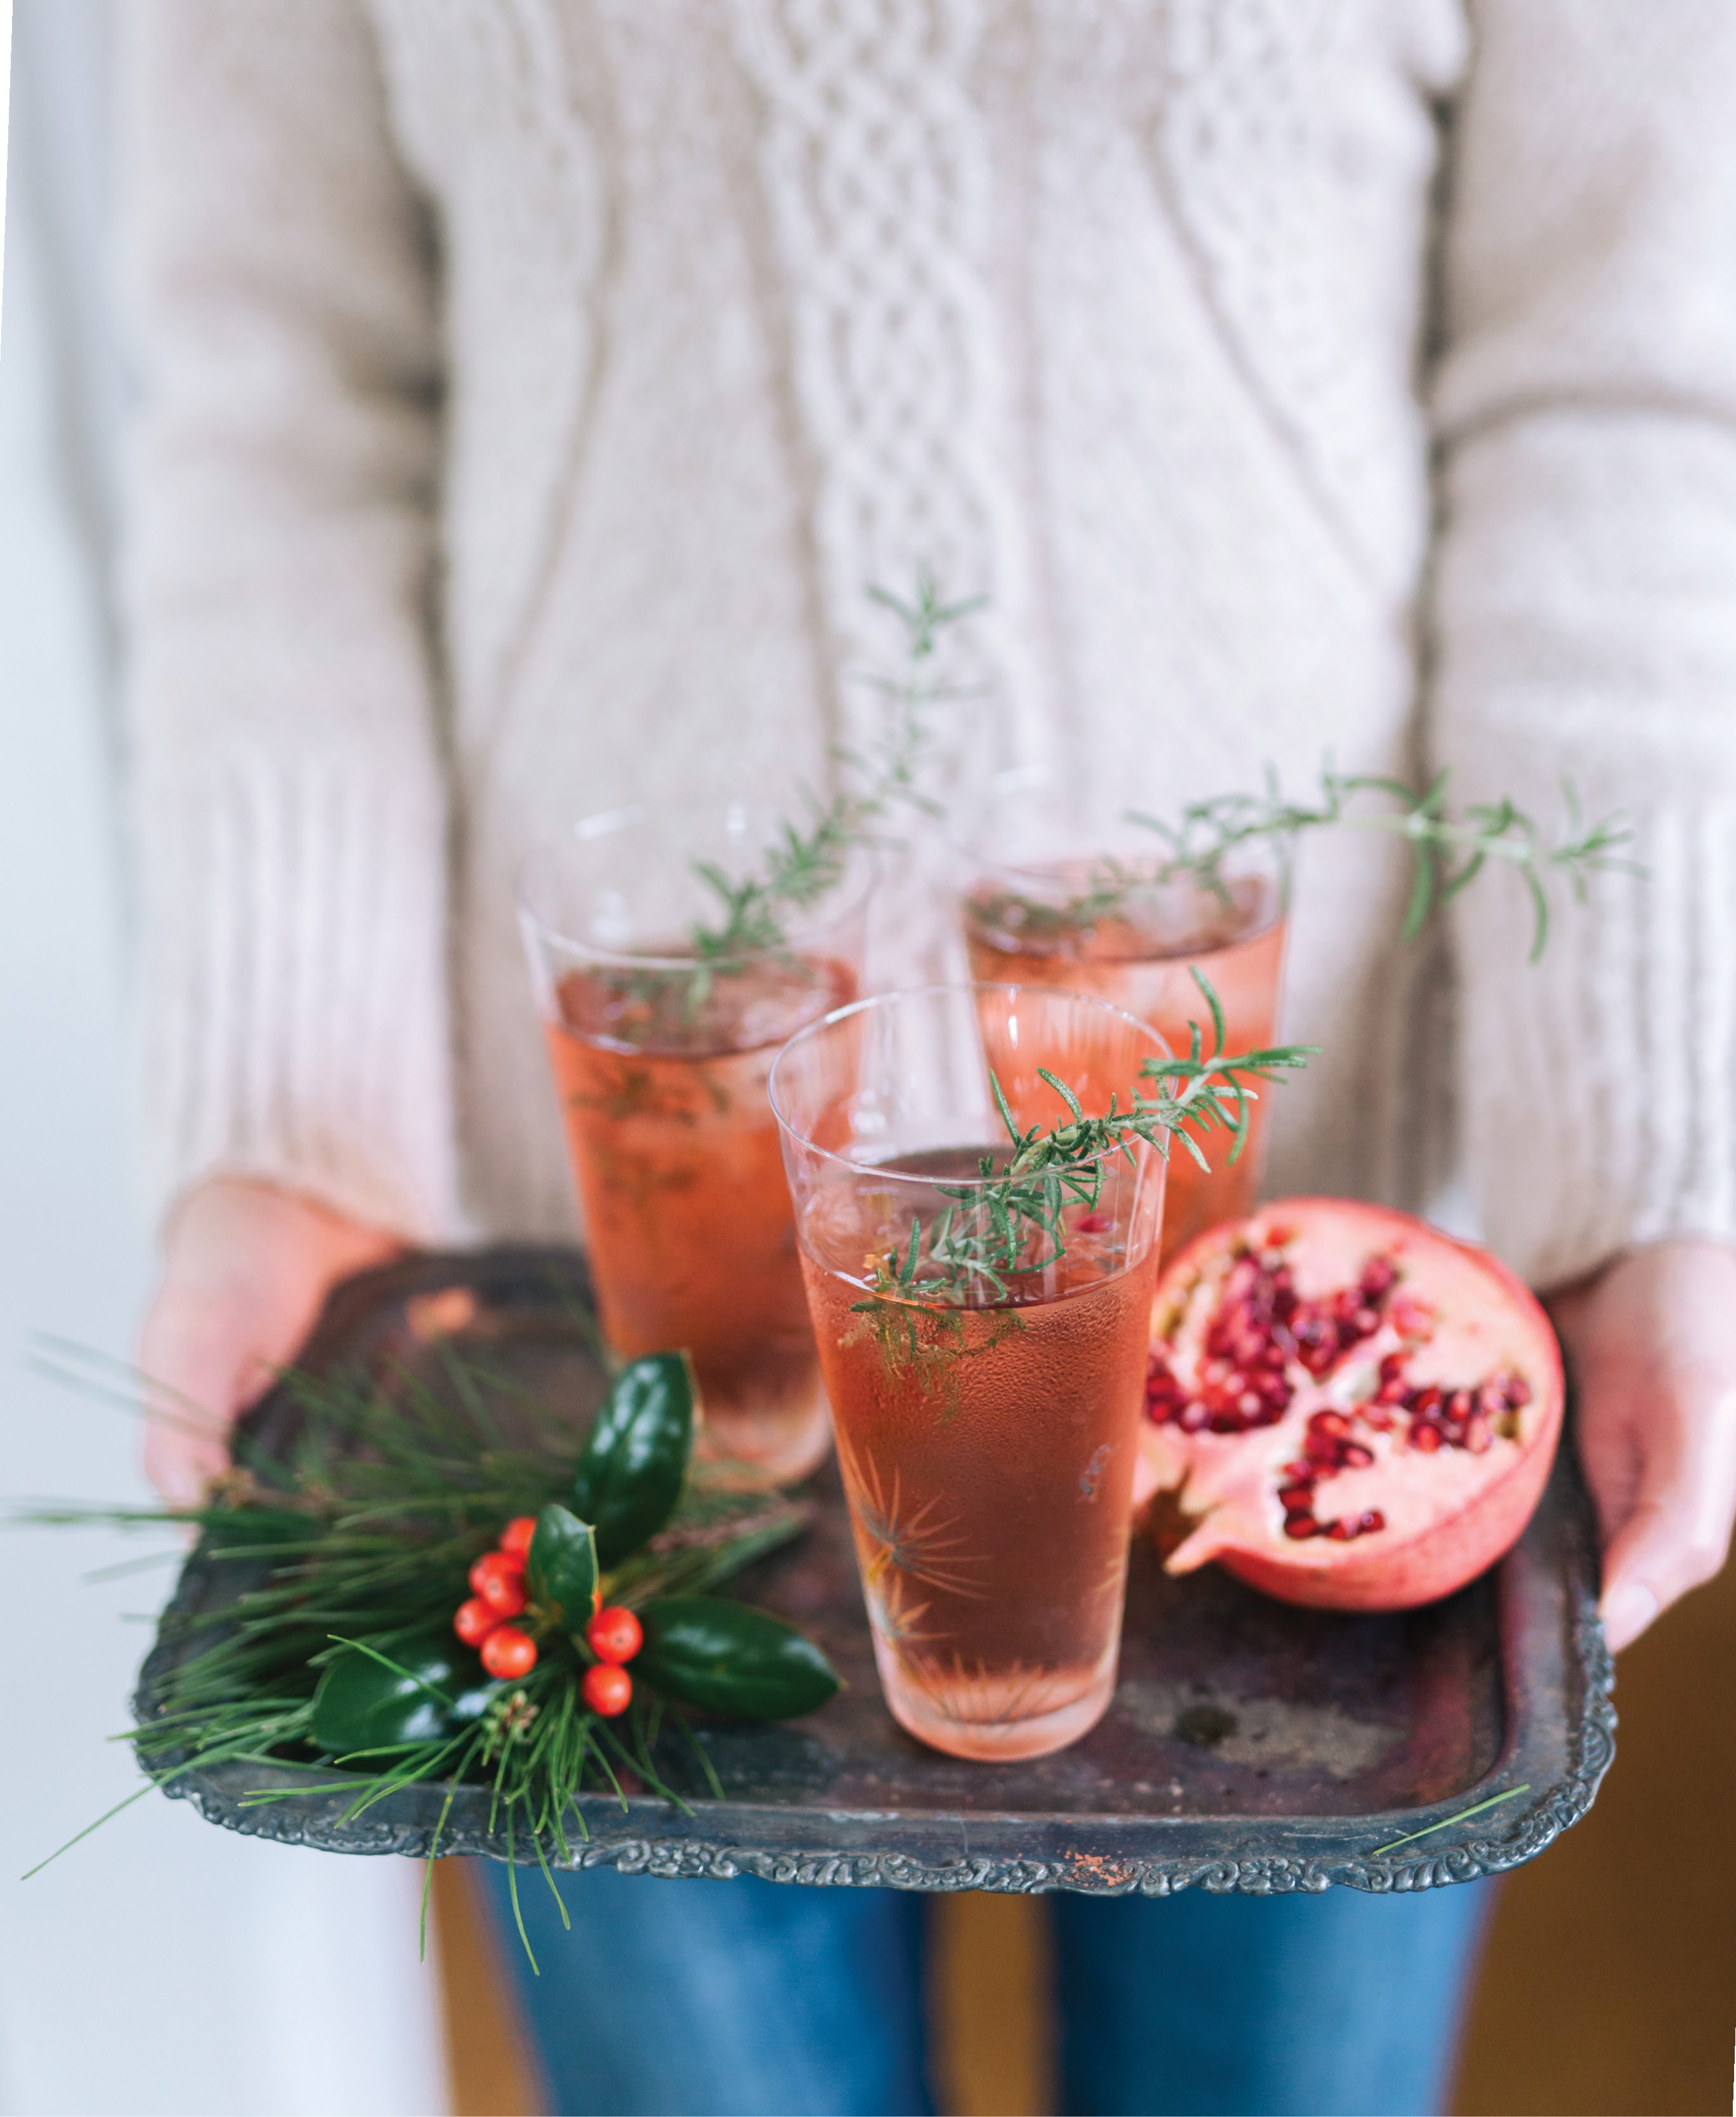 Offer guests a special cocktail, like this pomegranate spritz, as soon as they walk in the door, but do have other options available, as well.